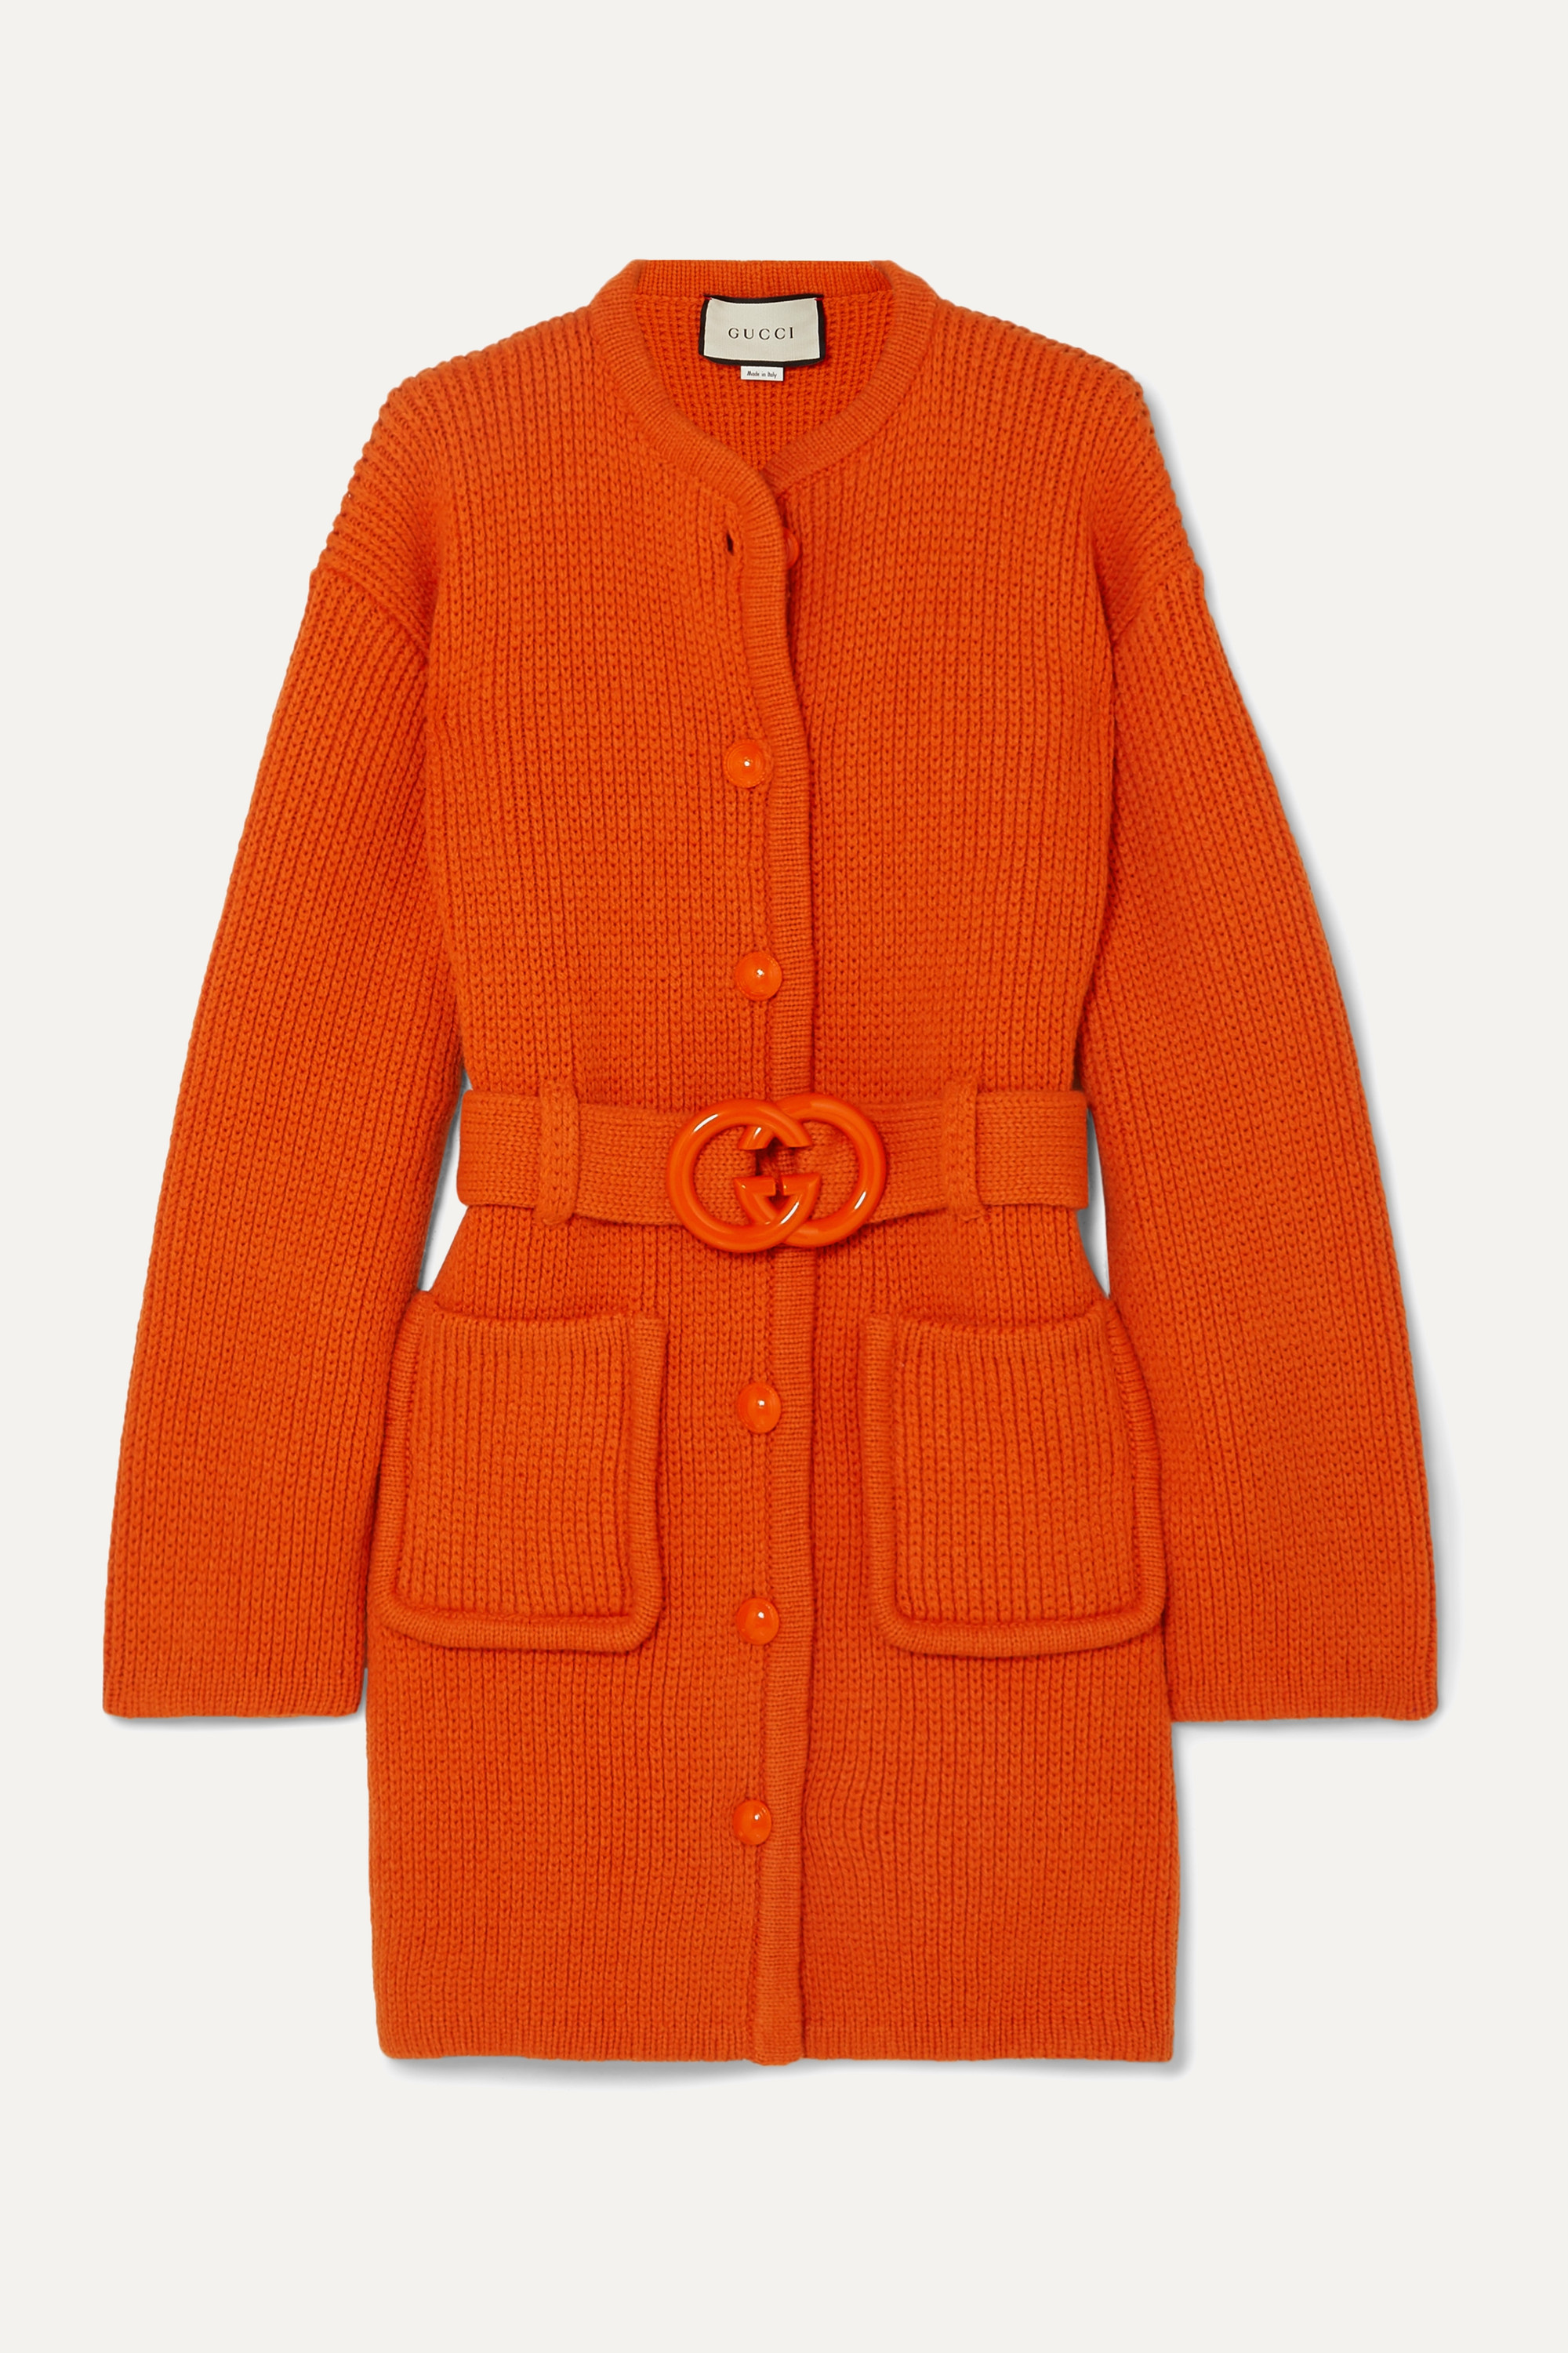 Gucci Belted wool cardigan